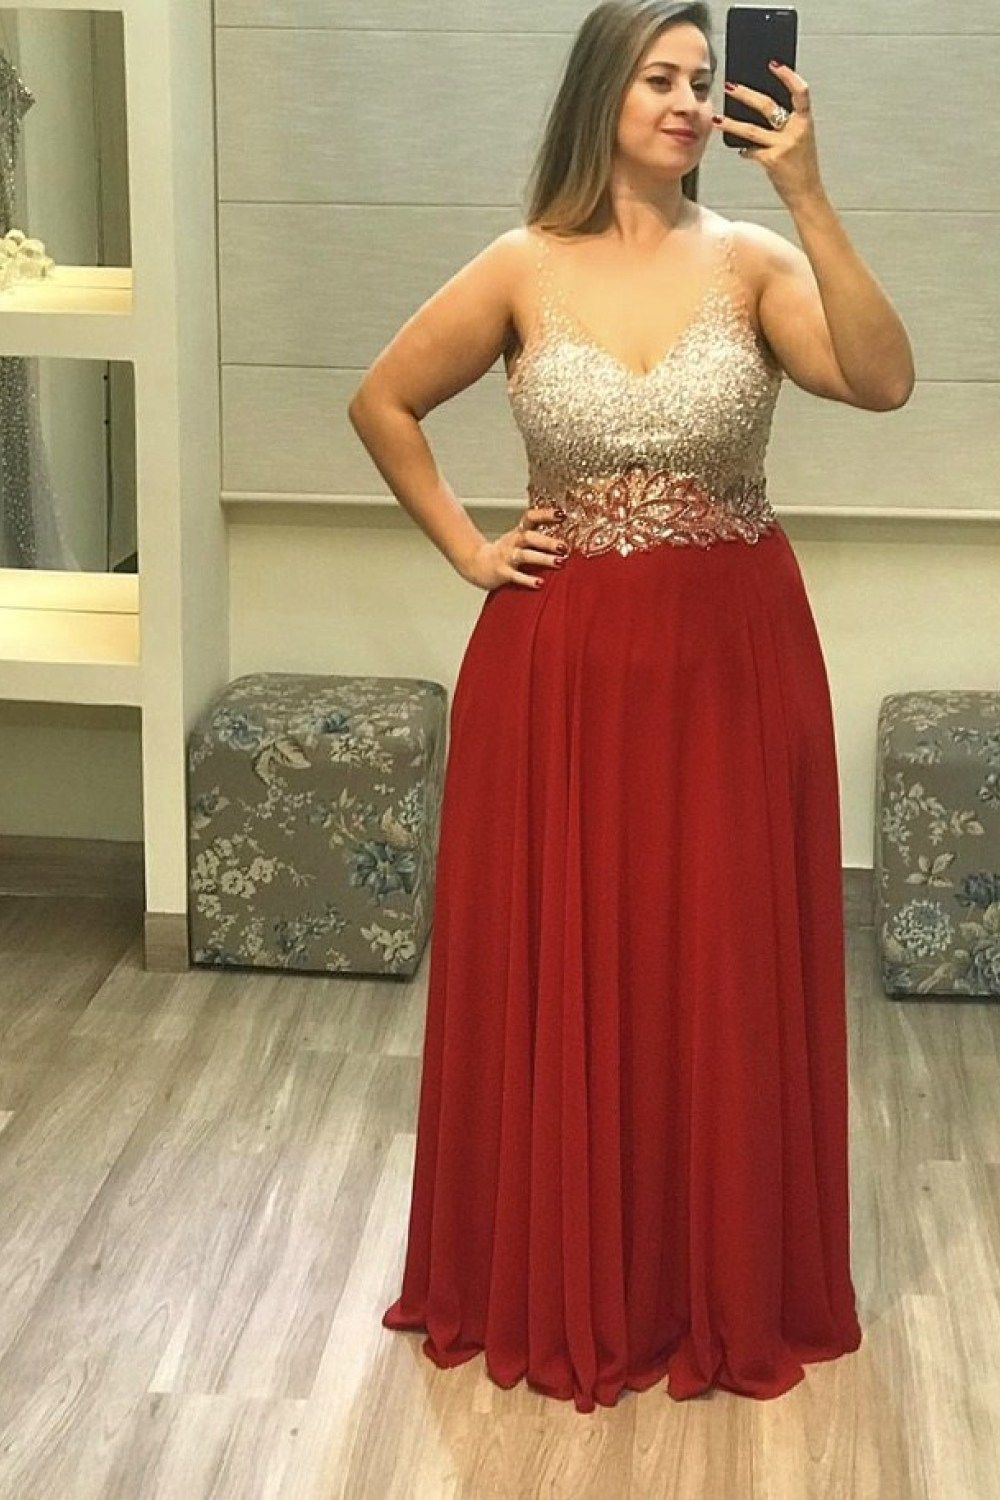 Red colour outfit ideas 2020 with bridal party dress, strapless dress, wedding dress